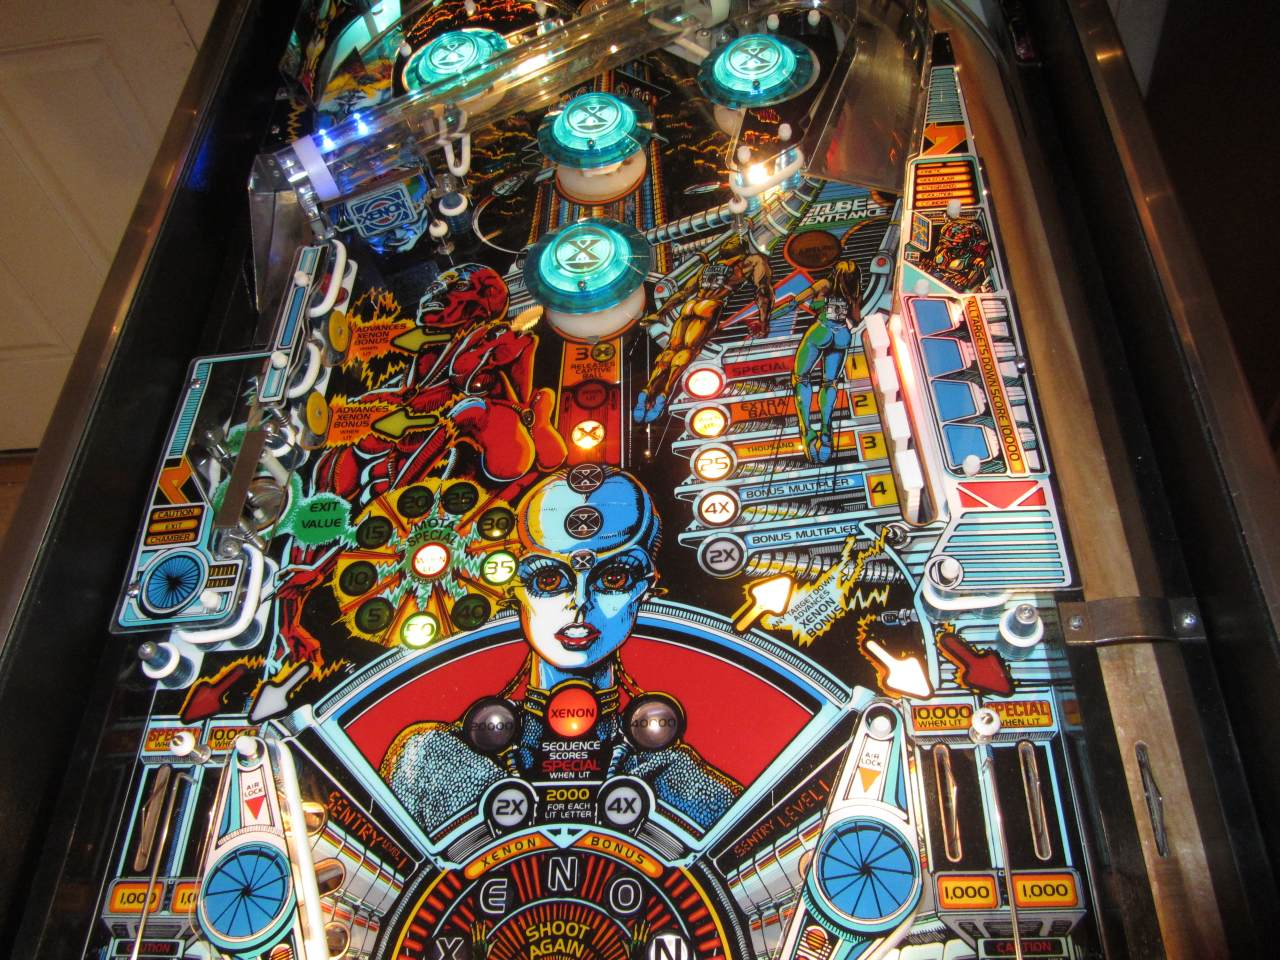 Bally Xenon Pinball Machine 2 Pinballmania Llc